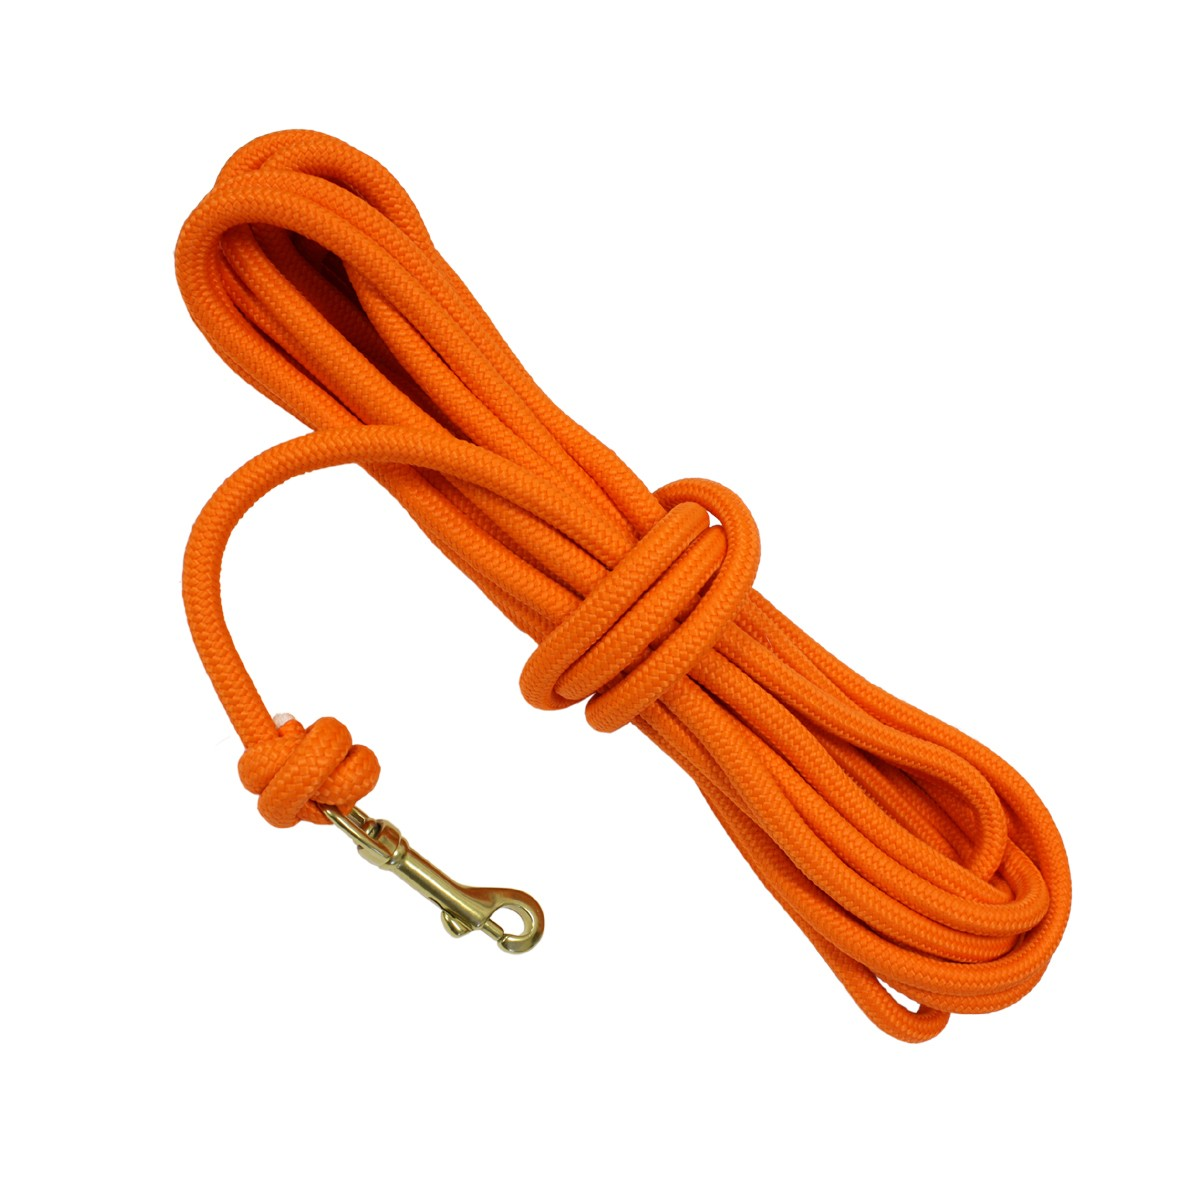 Rope for dog training in obedience.